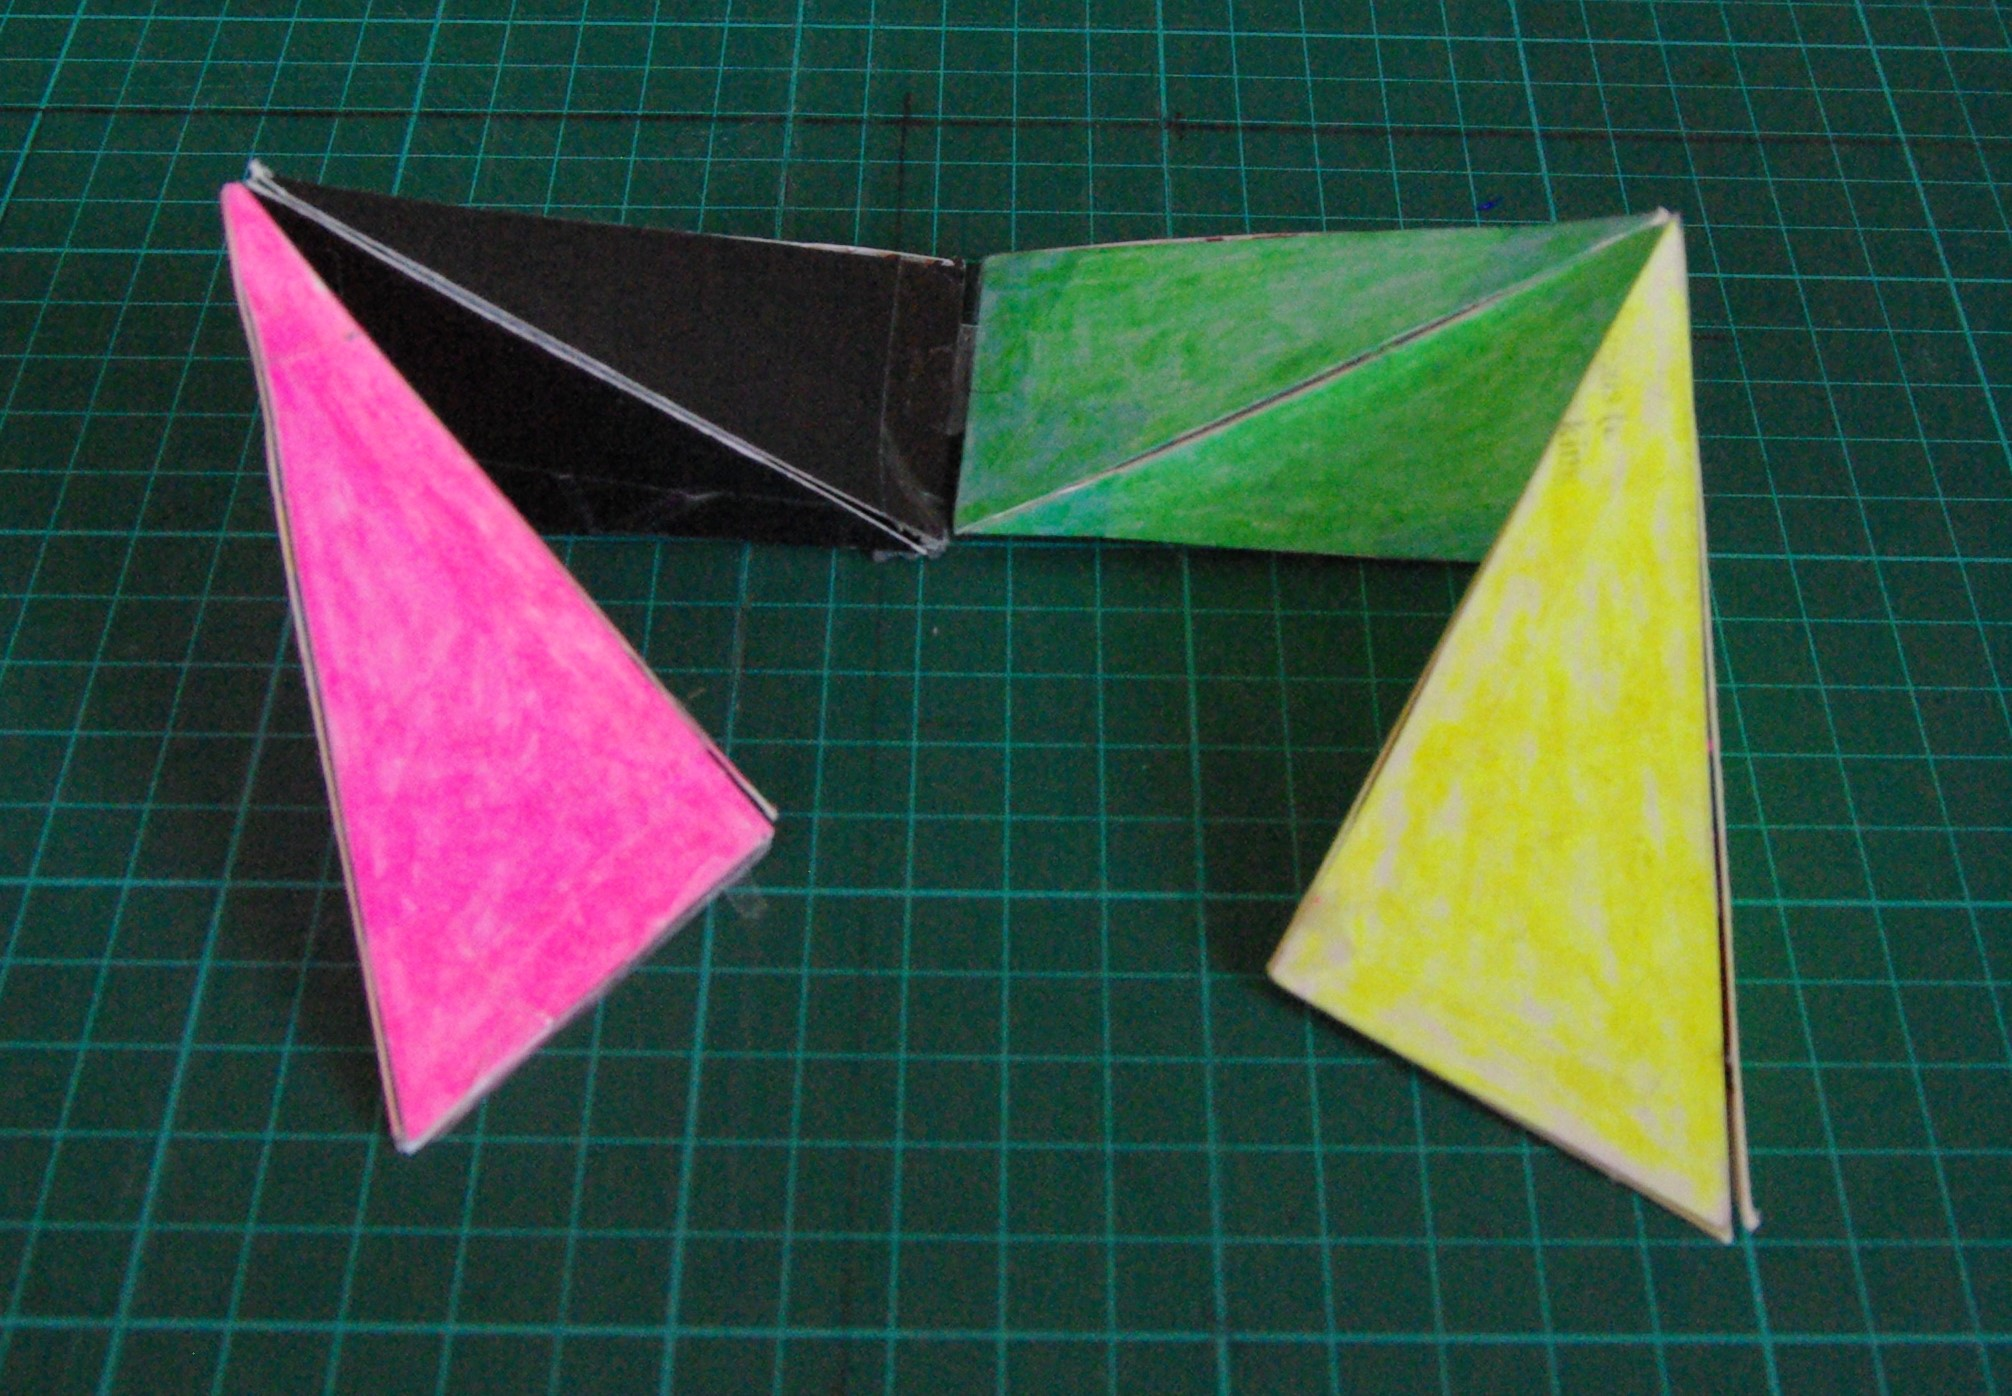 Picture of Opening and Closing the Regular Tetrahedron